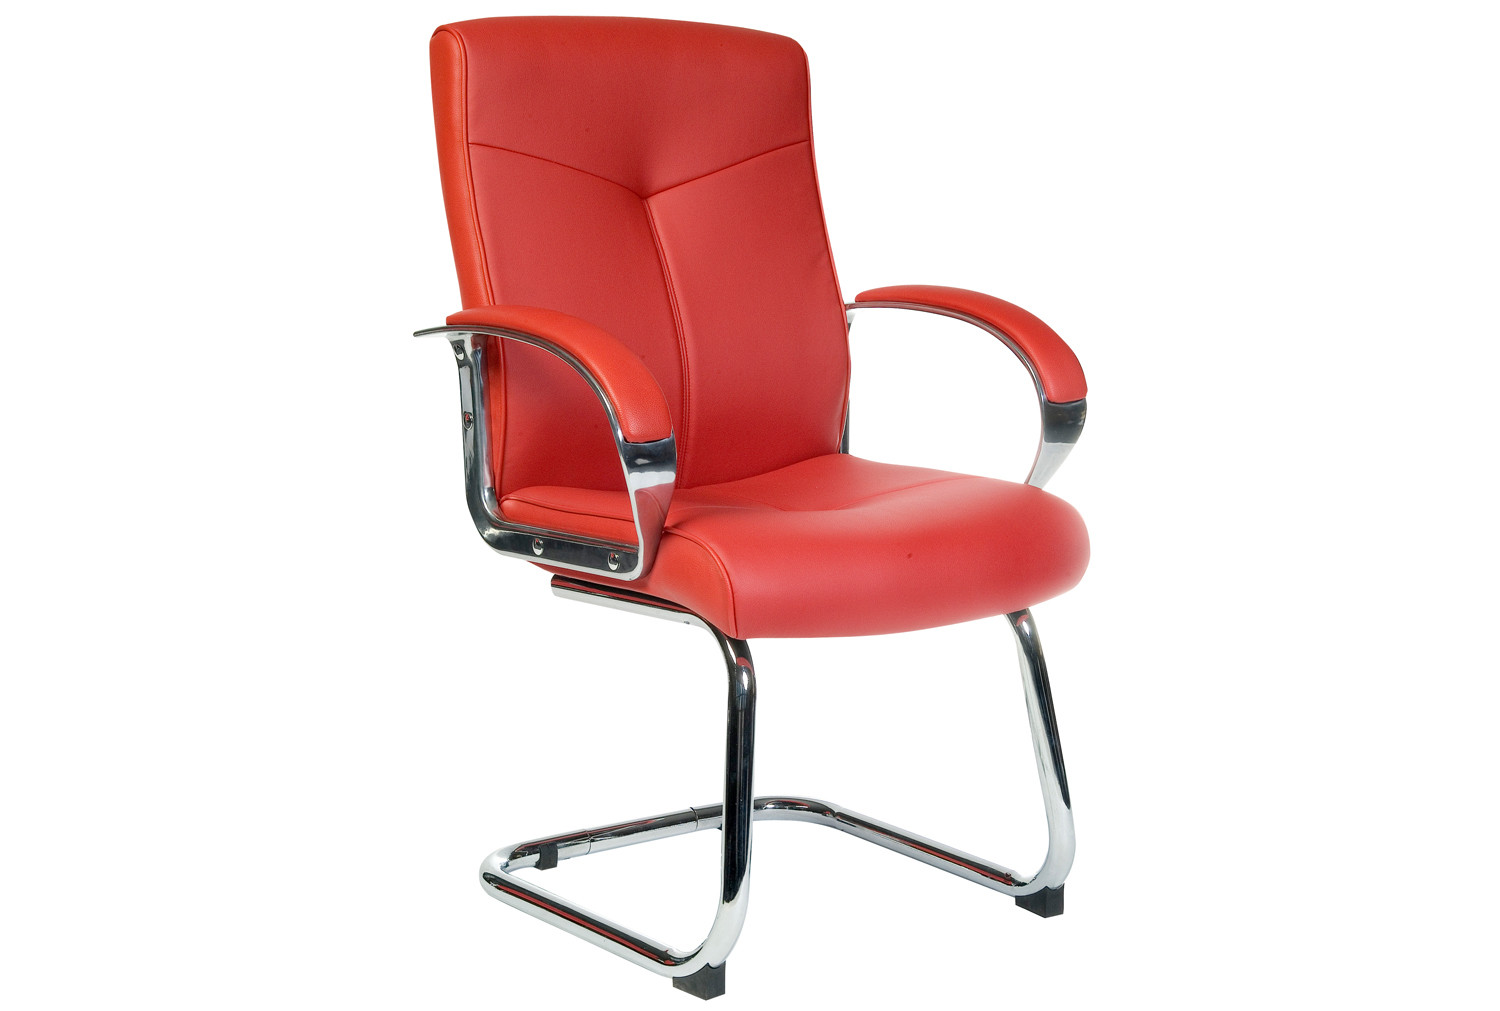 Hoxton Visitor Chair